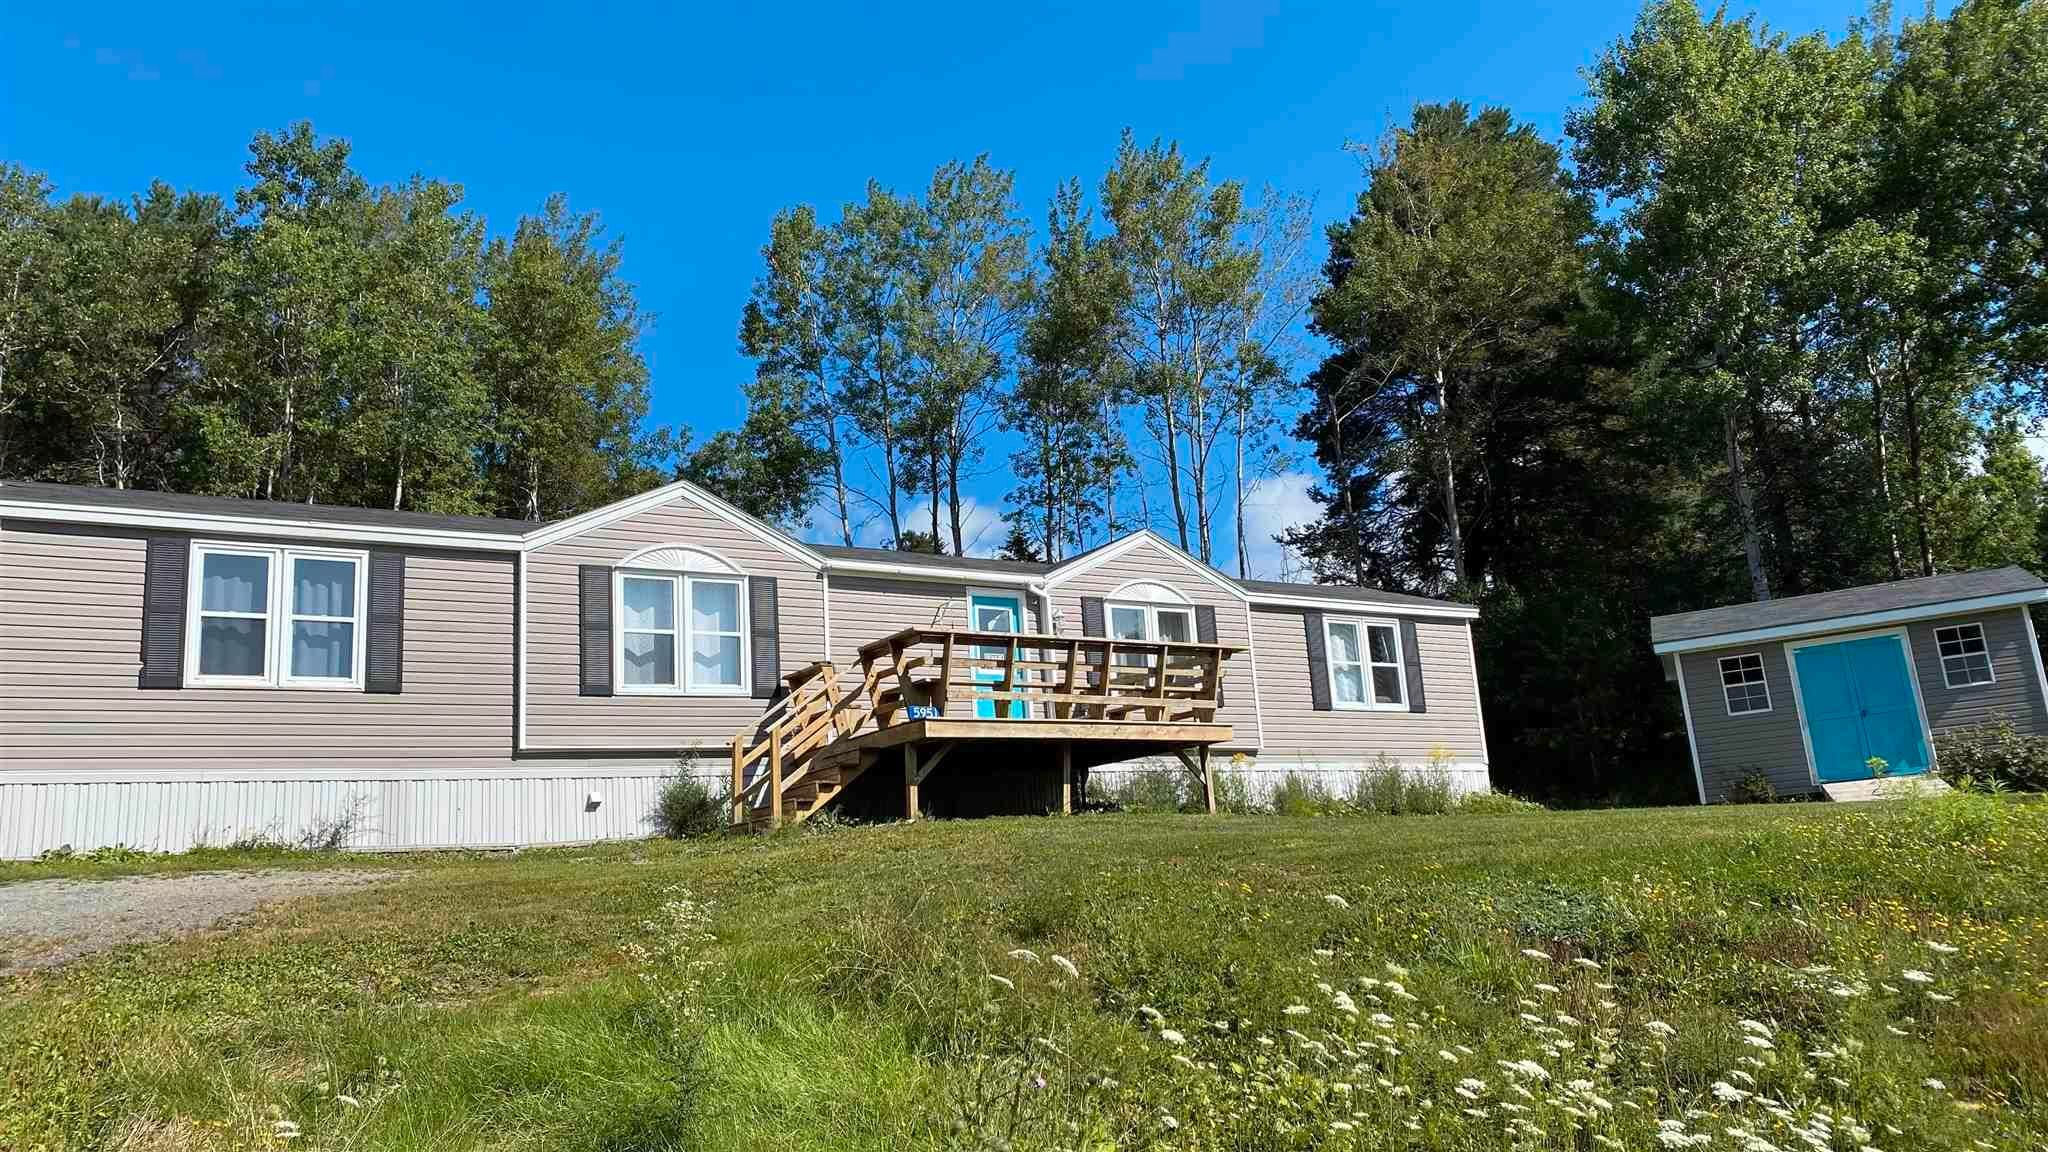 Main Photo: 5951 Highway 4 in Linacy: 108-Rural Pictou County Residential for sale (Northern Region)  : MLS®# 202121512